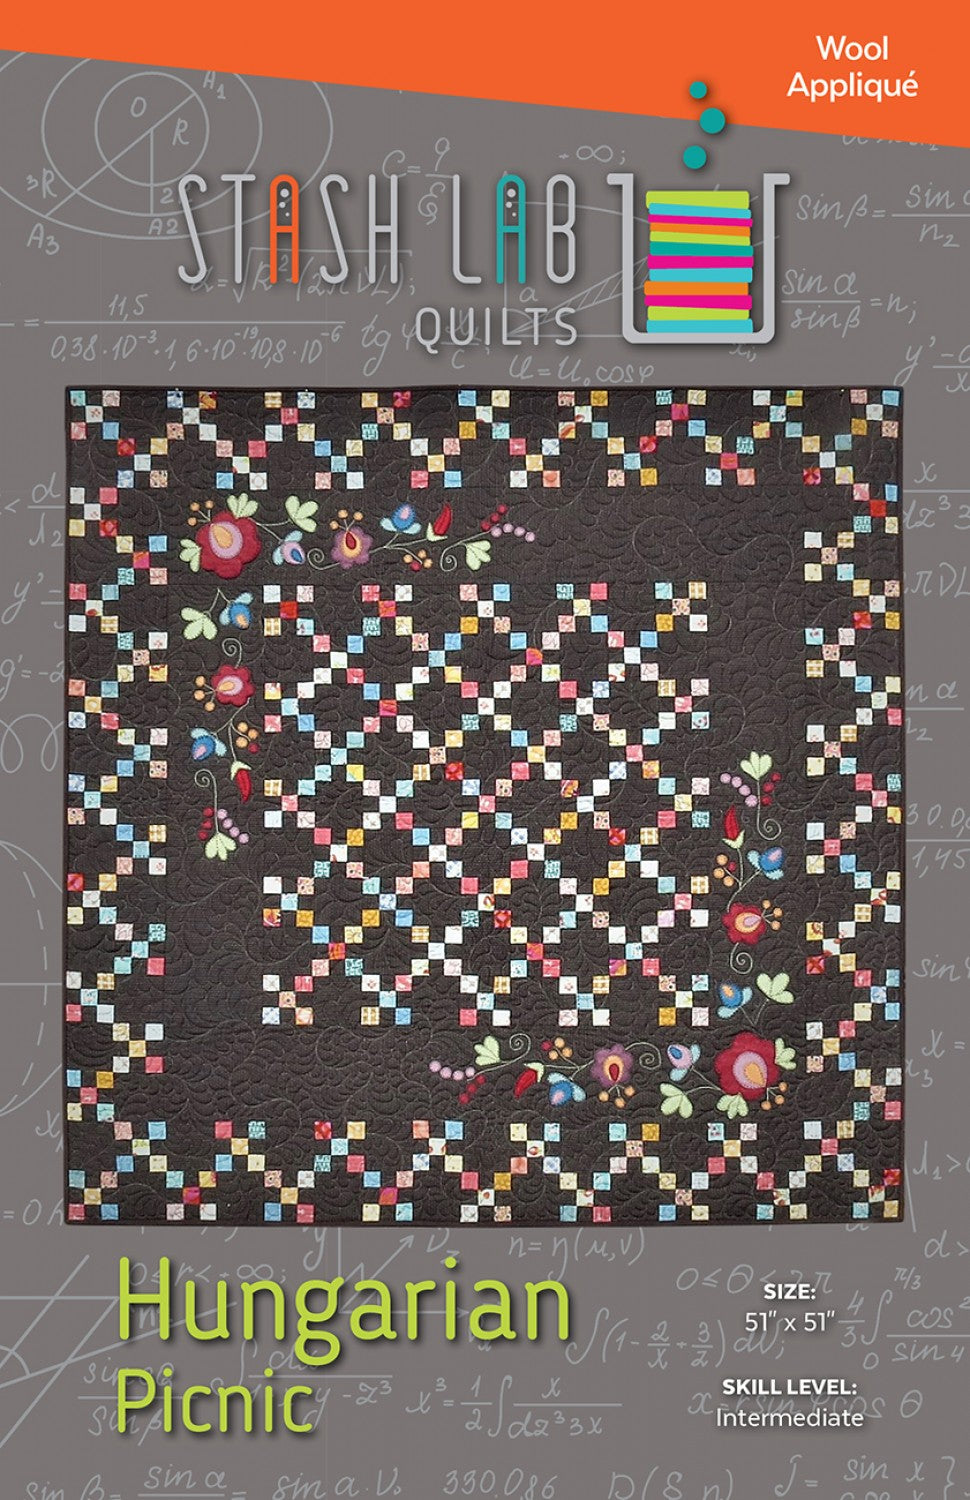 Stash Lab Quilts: Hungarian Picnic Quilt Pattern - TA-111